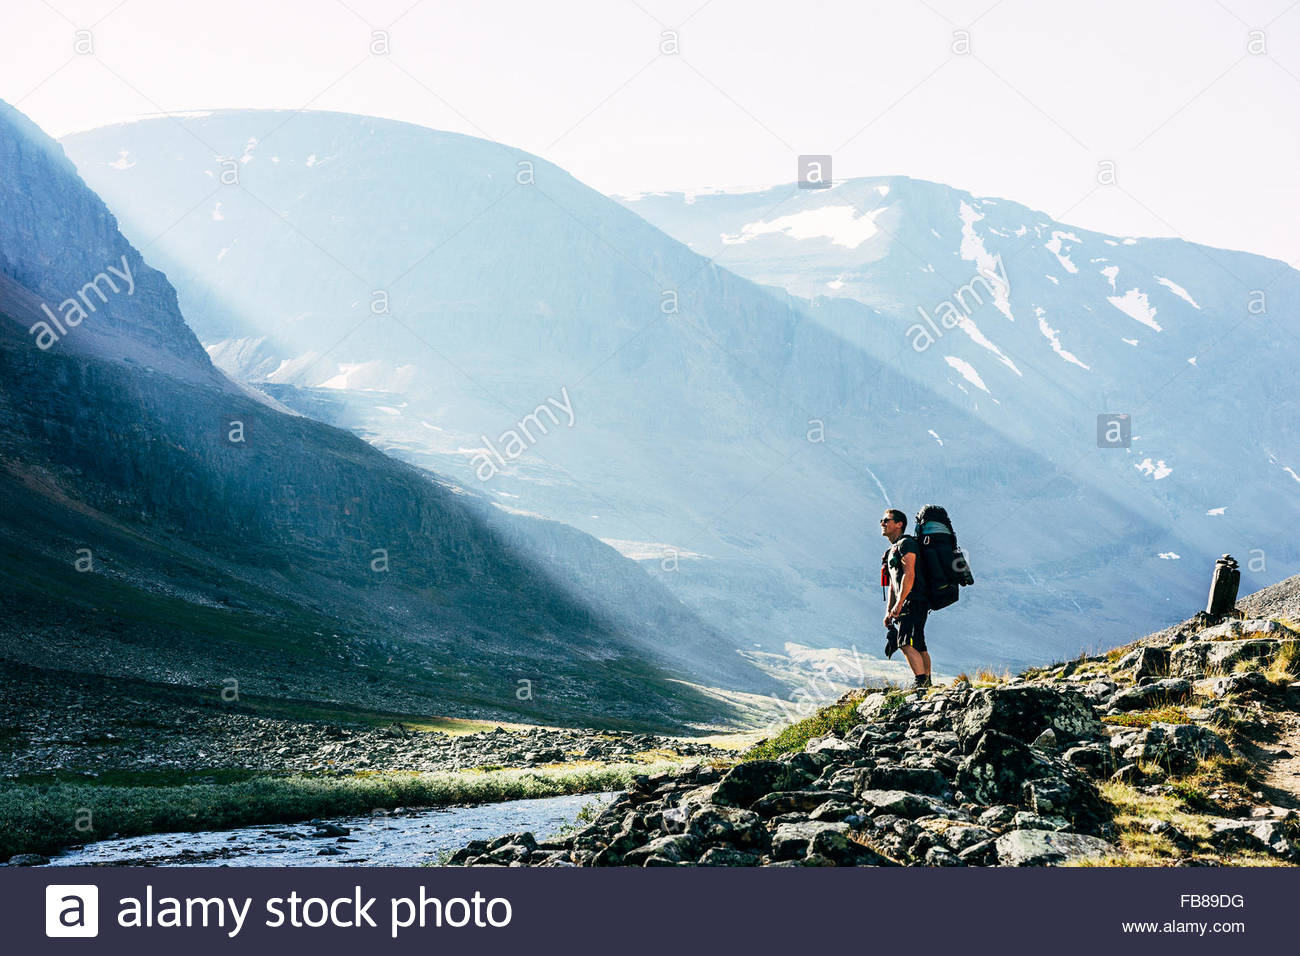 Sweden, Lapland, Ladtjovagge, Kungsleden, Male hiker standing by river in mountain valley - Stock Image